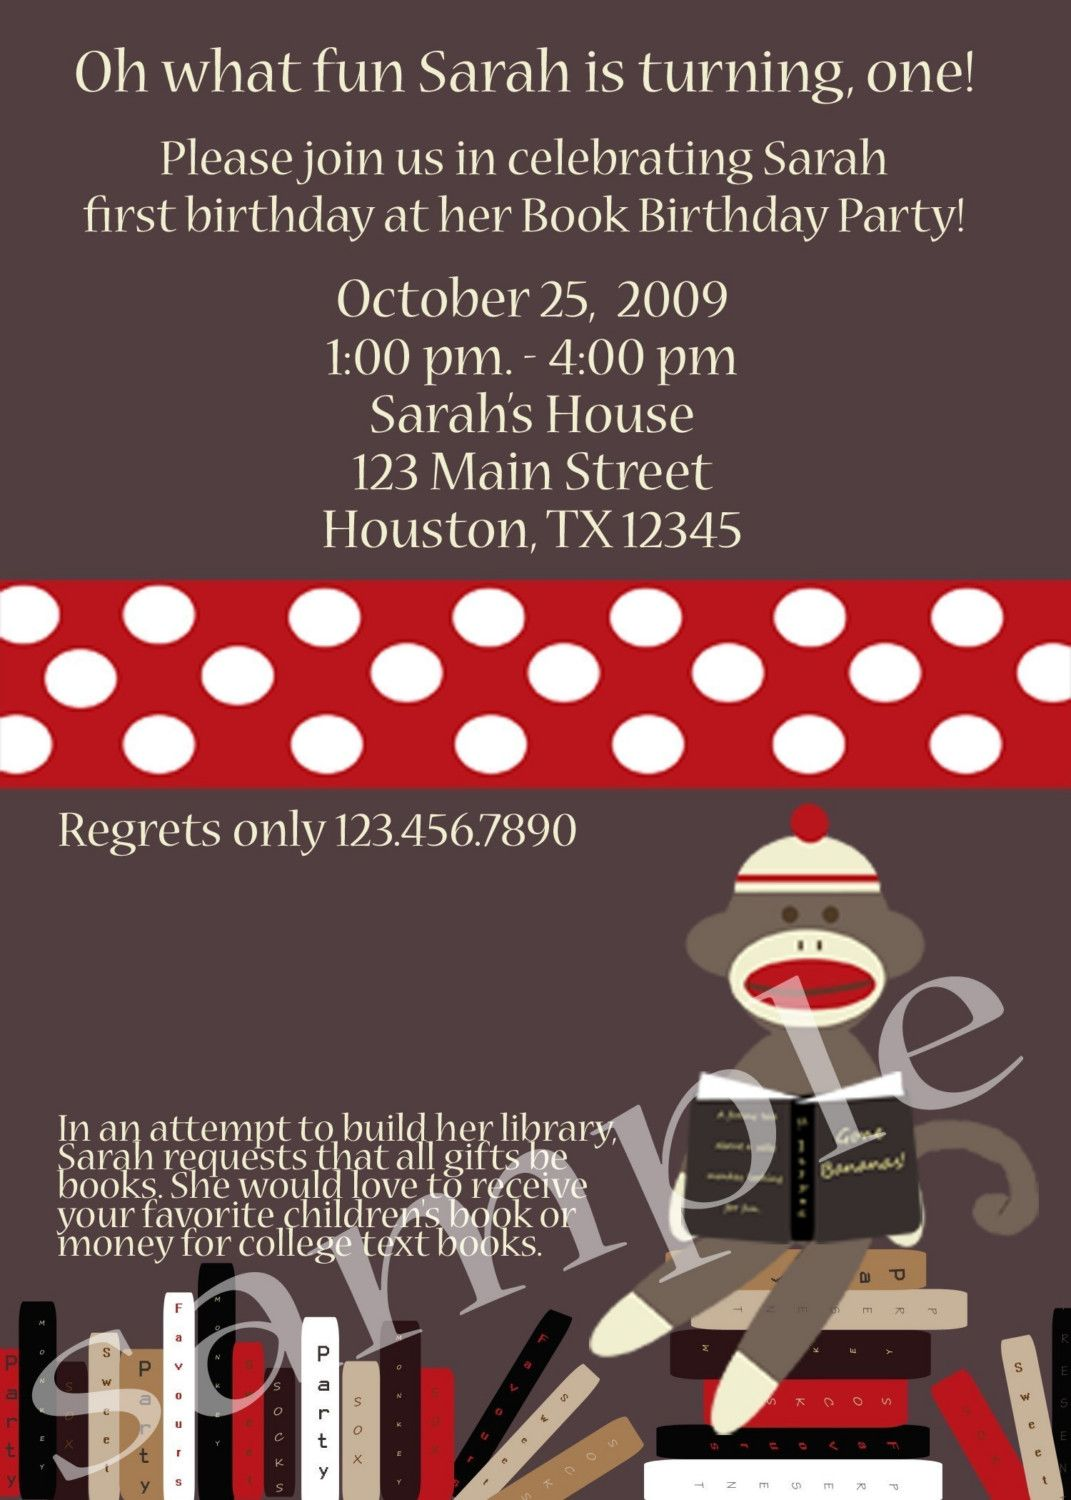 invitation wording Book Birthday Party Parties – Book Party Invitation